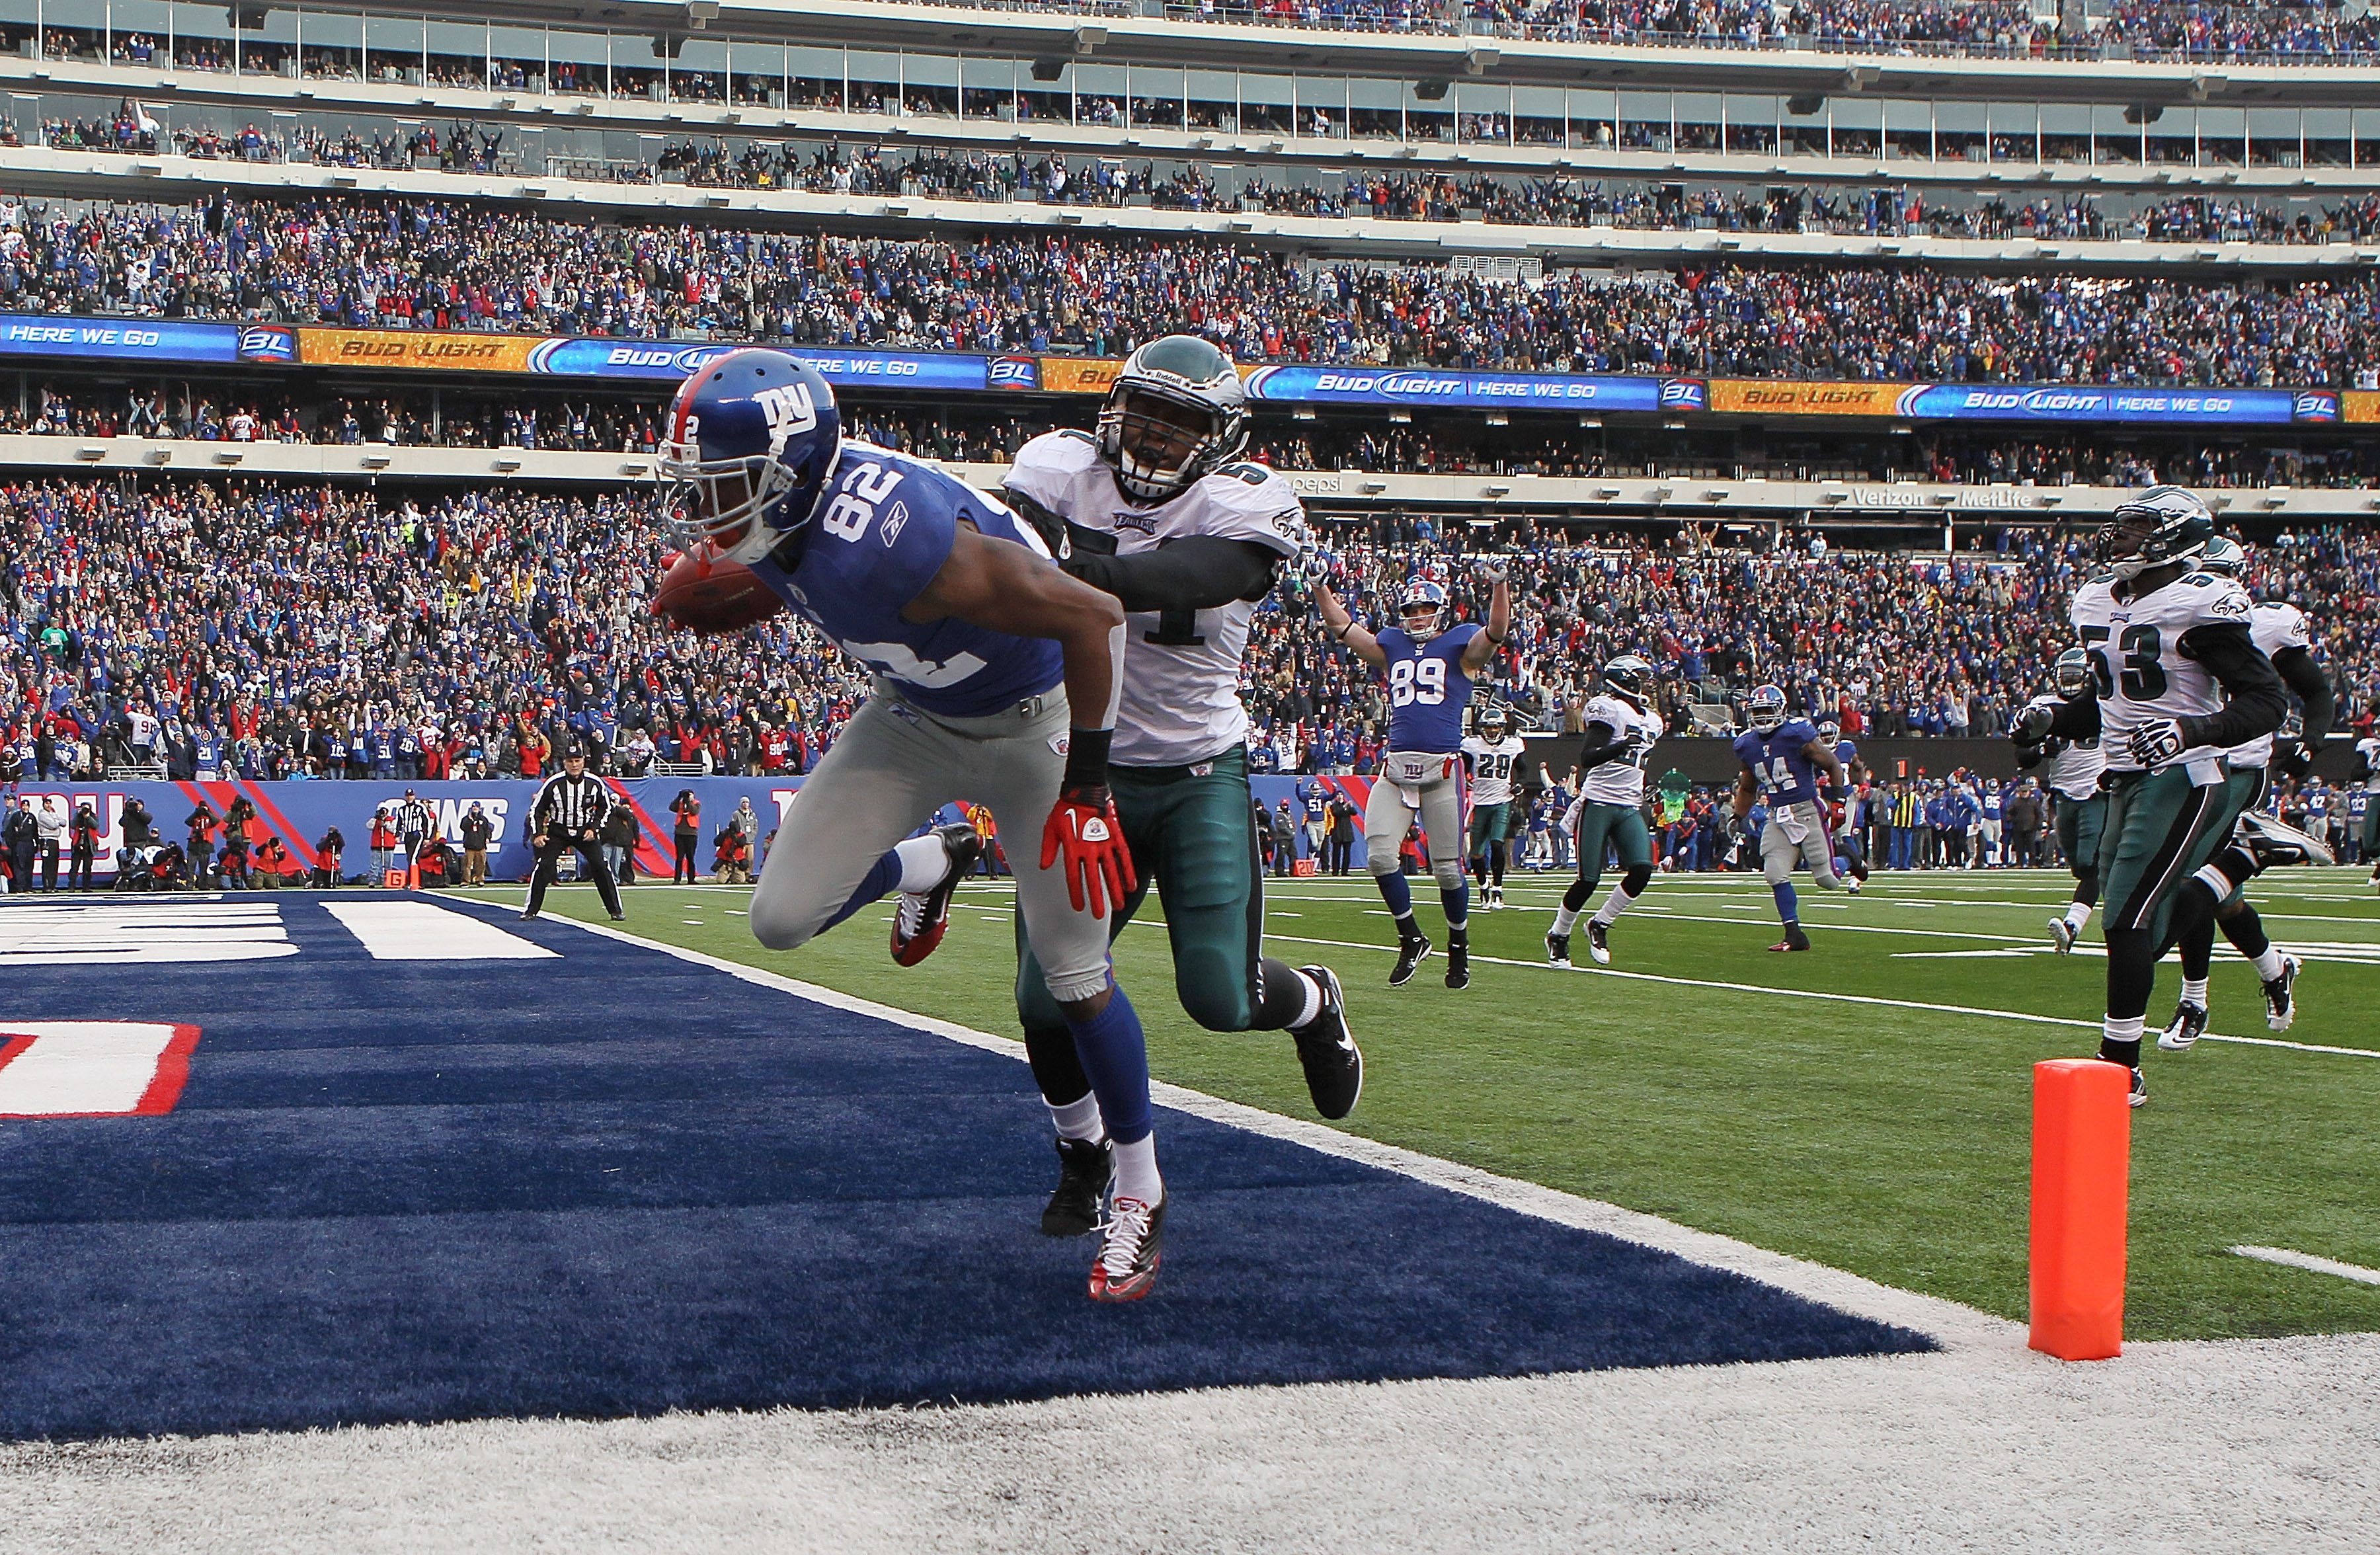 EAST RUTHERFORD, NJ - DECEMBER 19: Mario Manningham #82 of the New York Giants crosses in the corner for a touchdown against the Philadelphia Eagles at New Meadowlands Stadium on December 19, 2010 in East Rutherford, New Jersey.  (Photo by Nick Laham/Gett